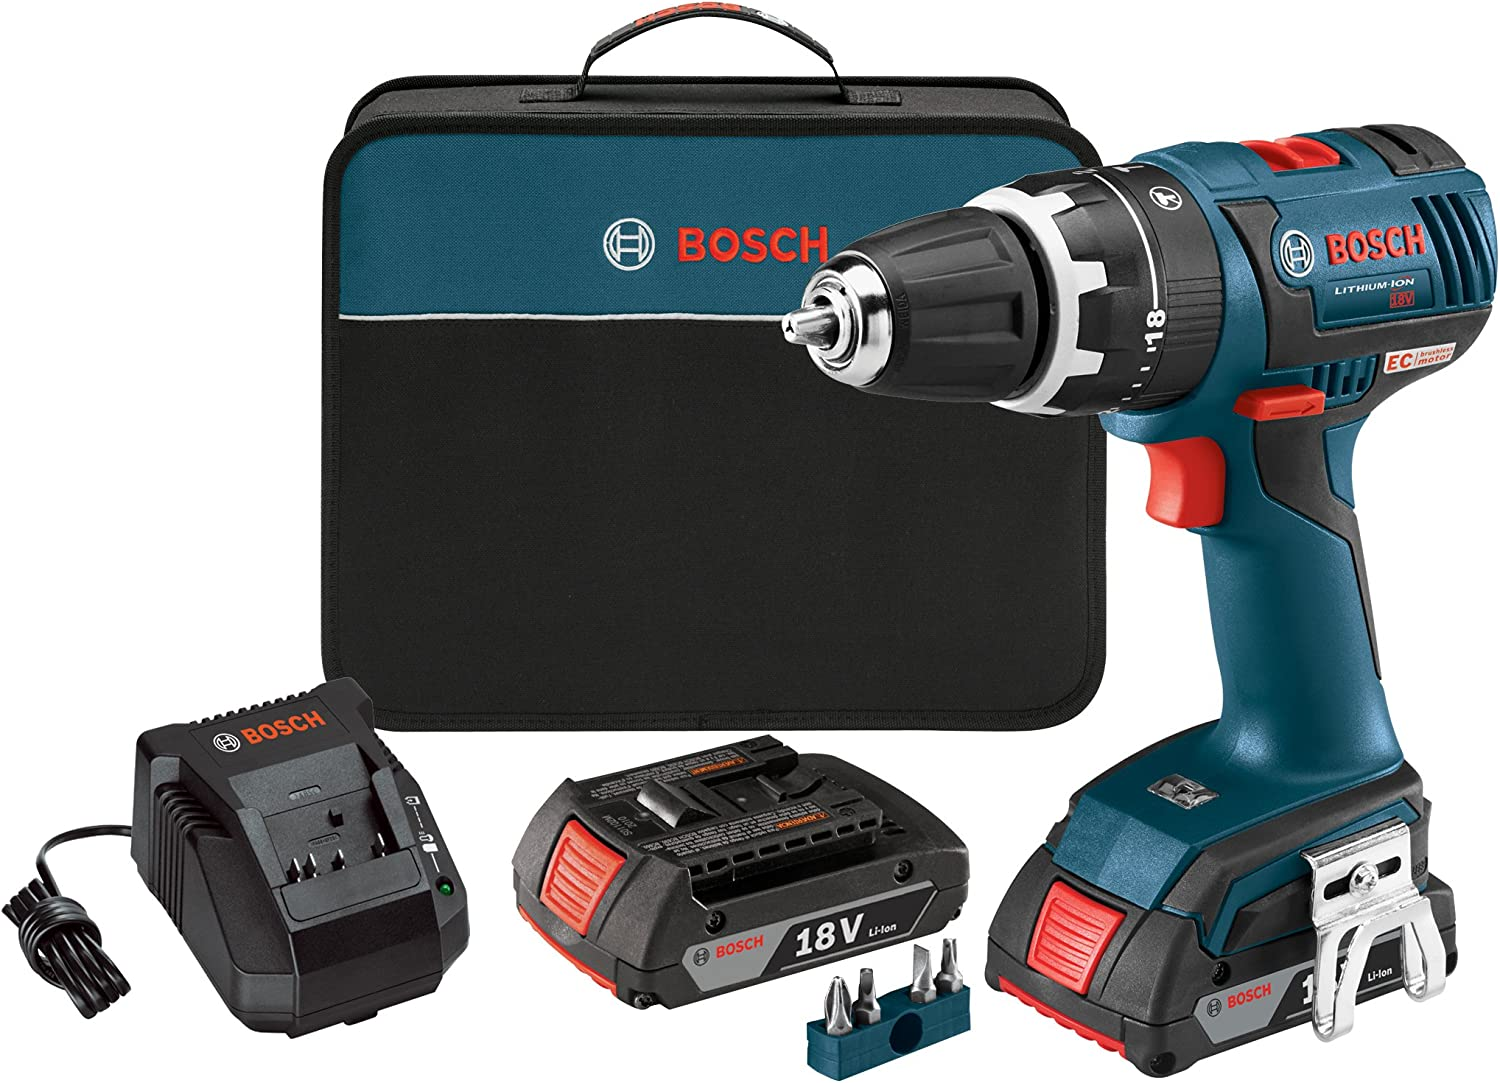 Bosch PS22-02 12-volt Max Brushless Pocket Driver Kit with 2.0Ah Batteries Charger and Case